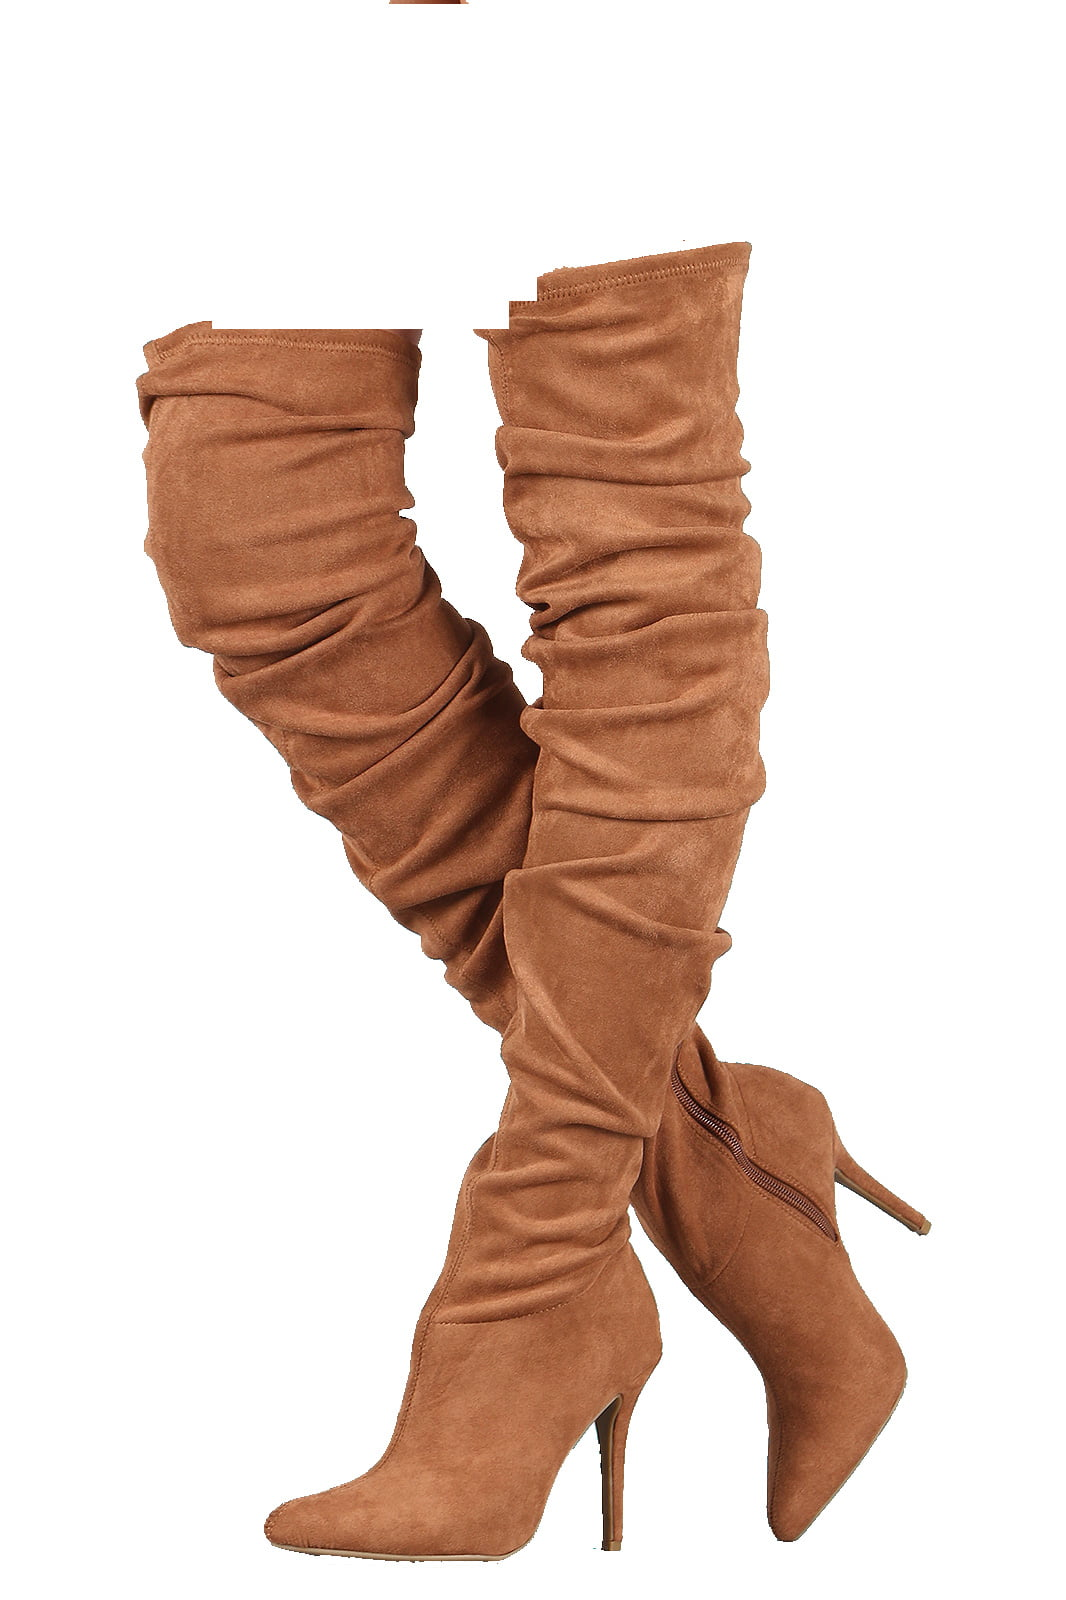 Anne Michelle Embellished Suede Pointy Toe Stiletto OTK Boots